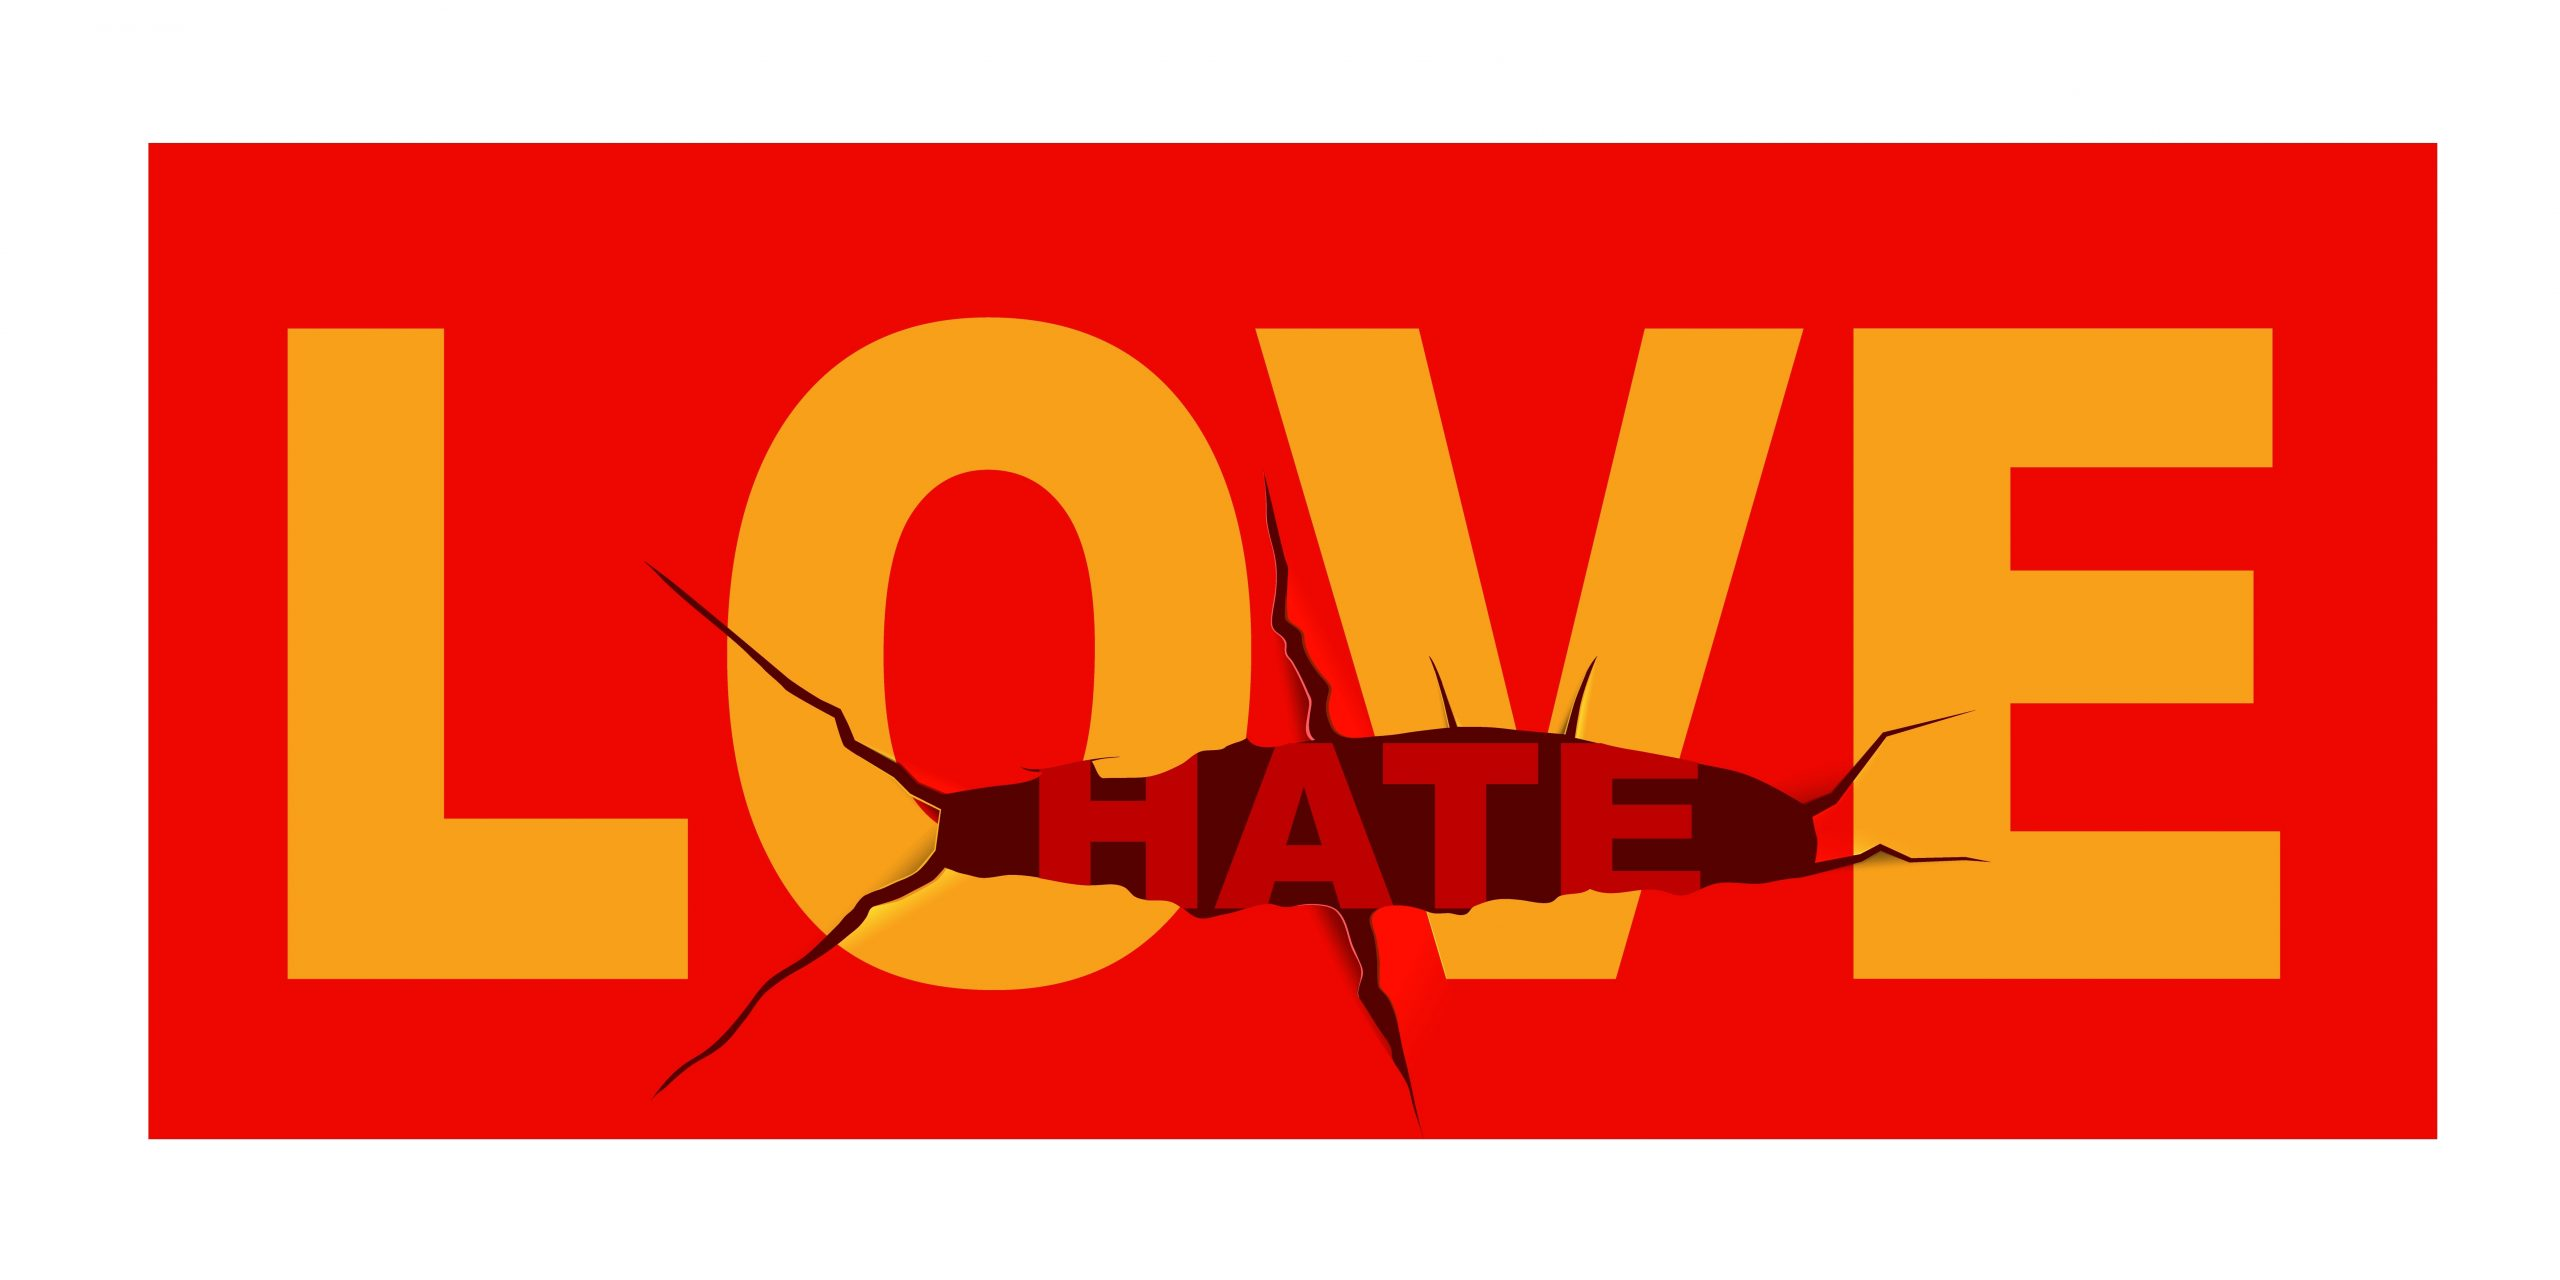 love-and-hate-image